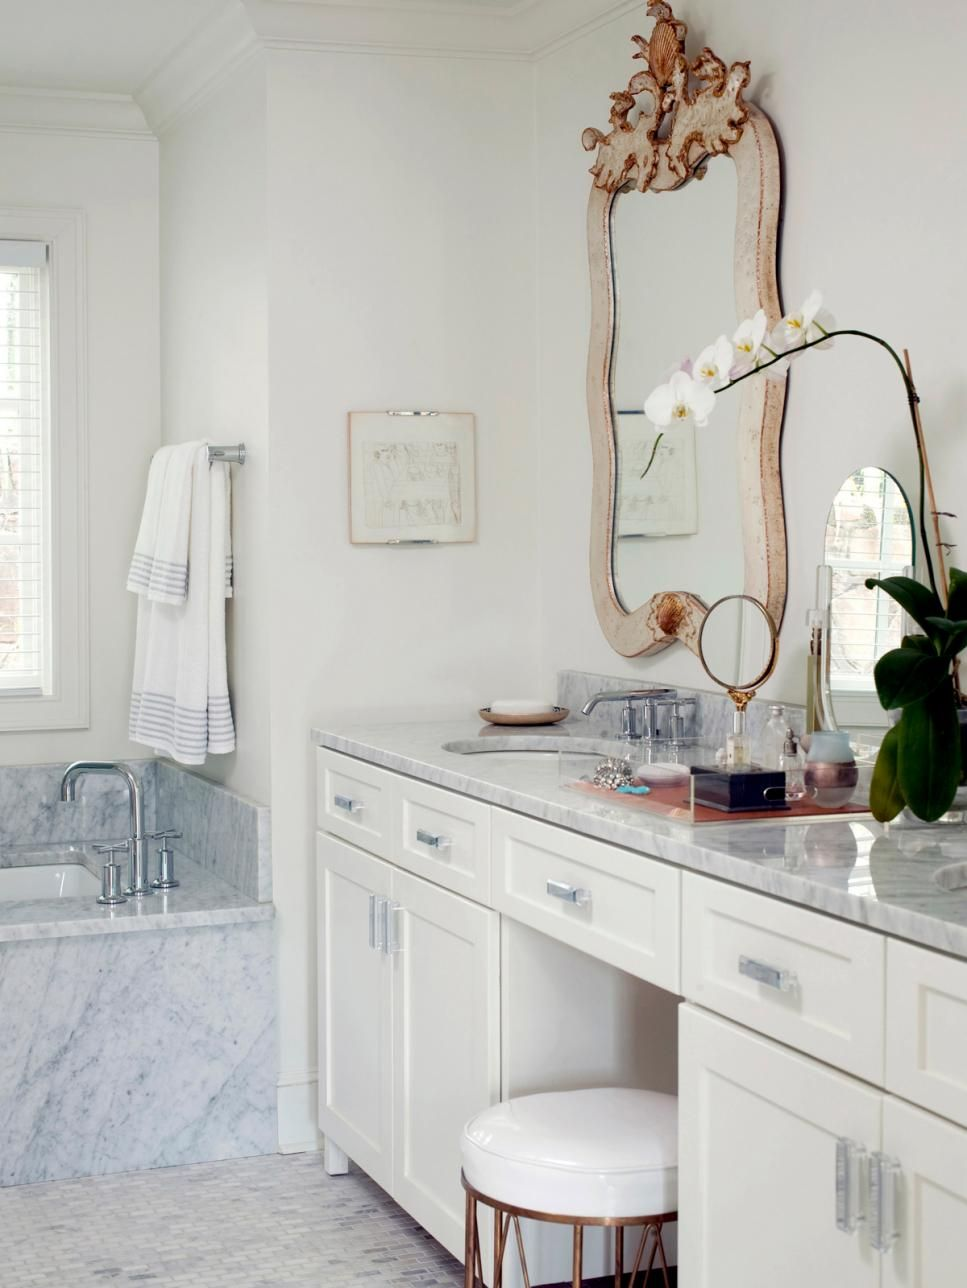 How To Design Your Bathroom Vanity With Makeup Counter